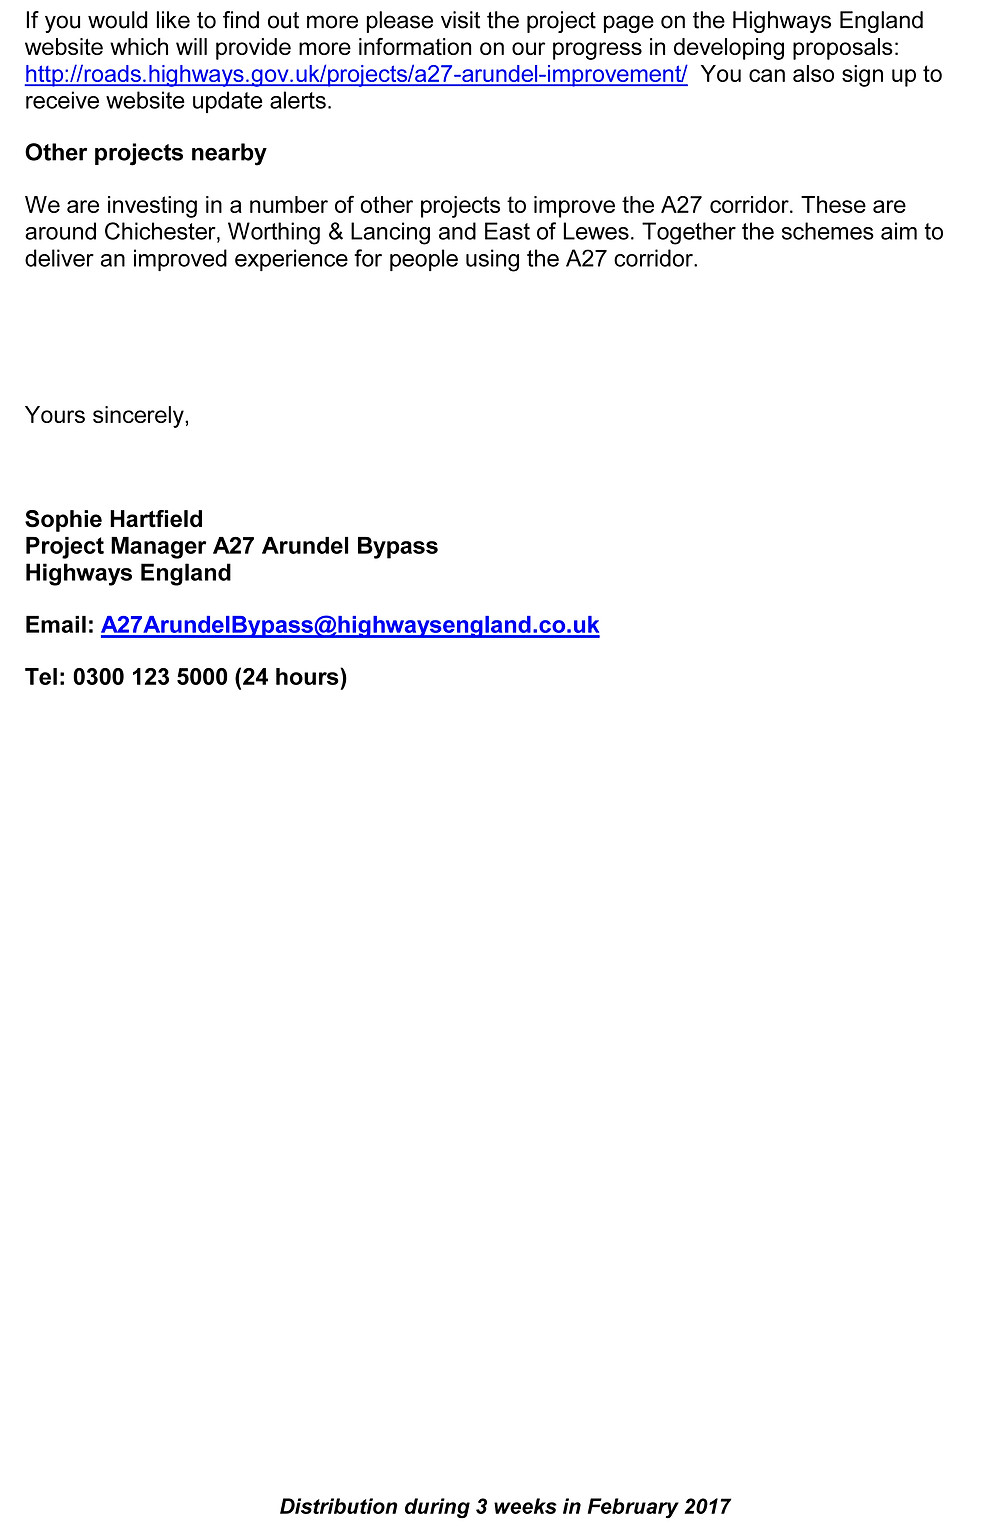 A27 Arundel Bypass Highways England letter Feb 2017